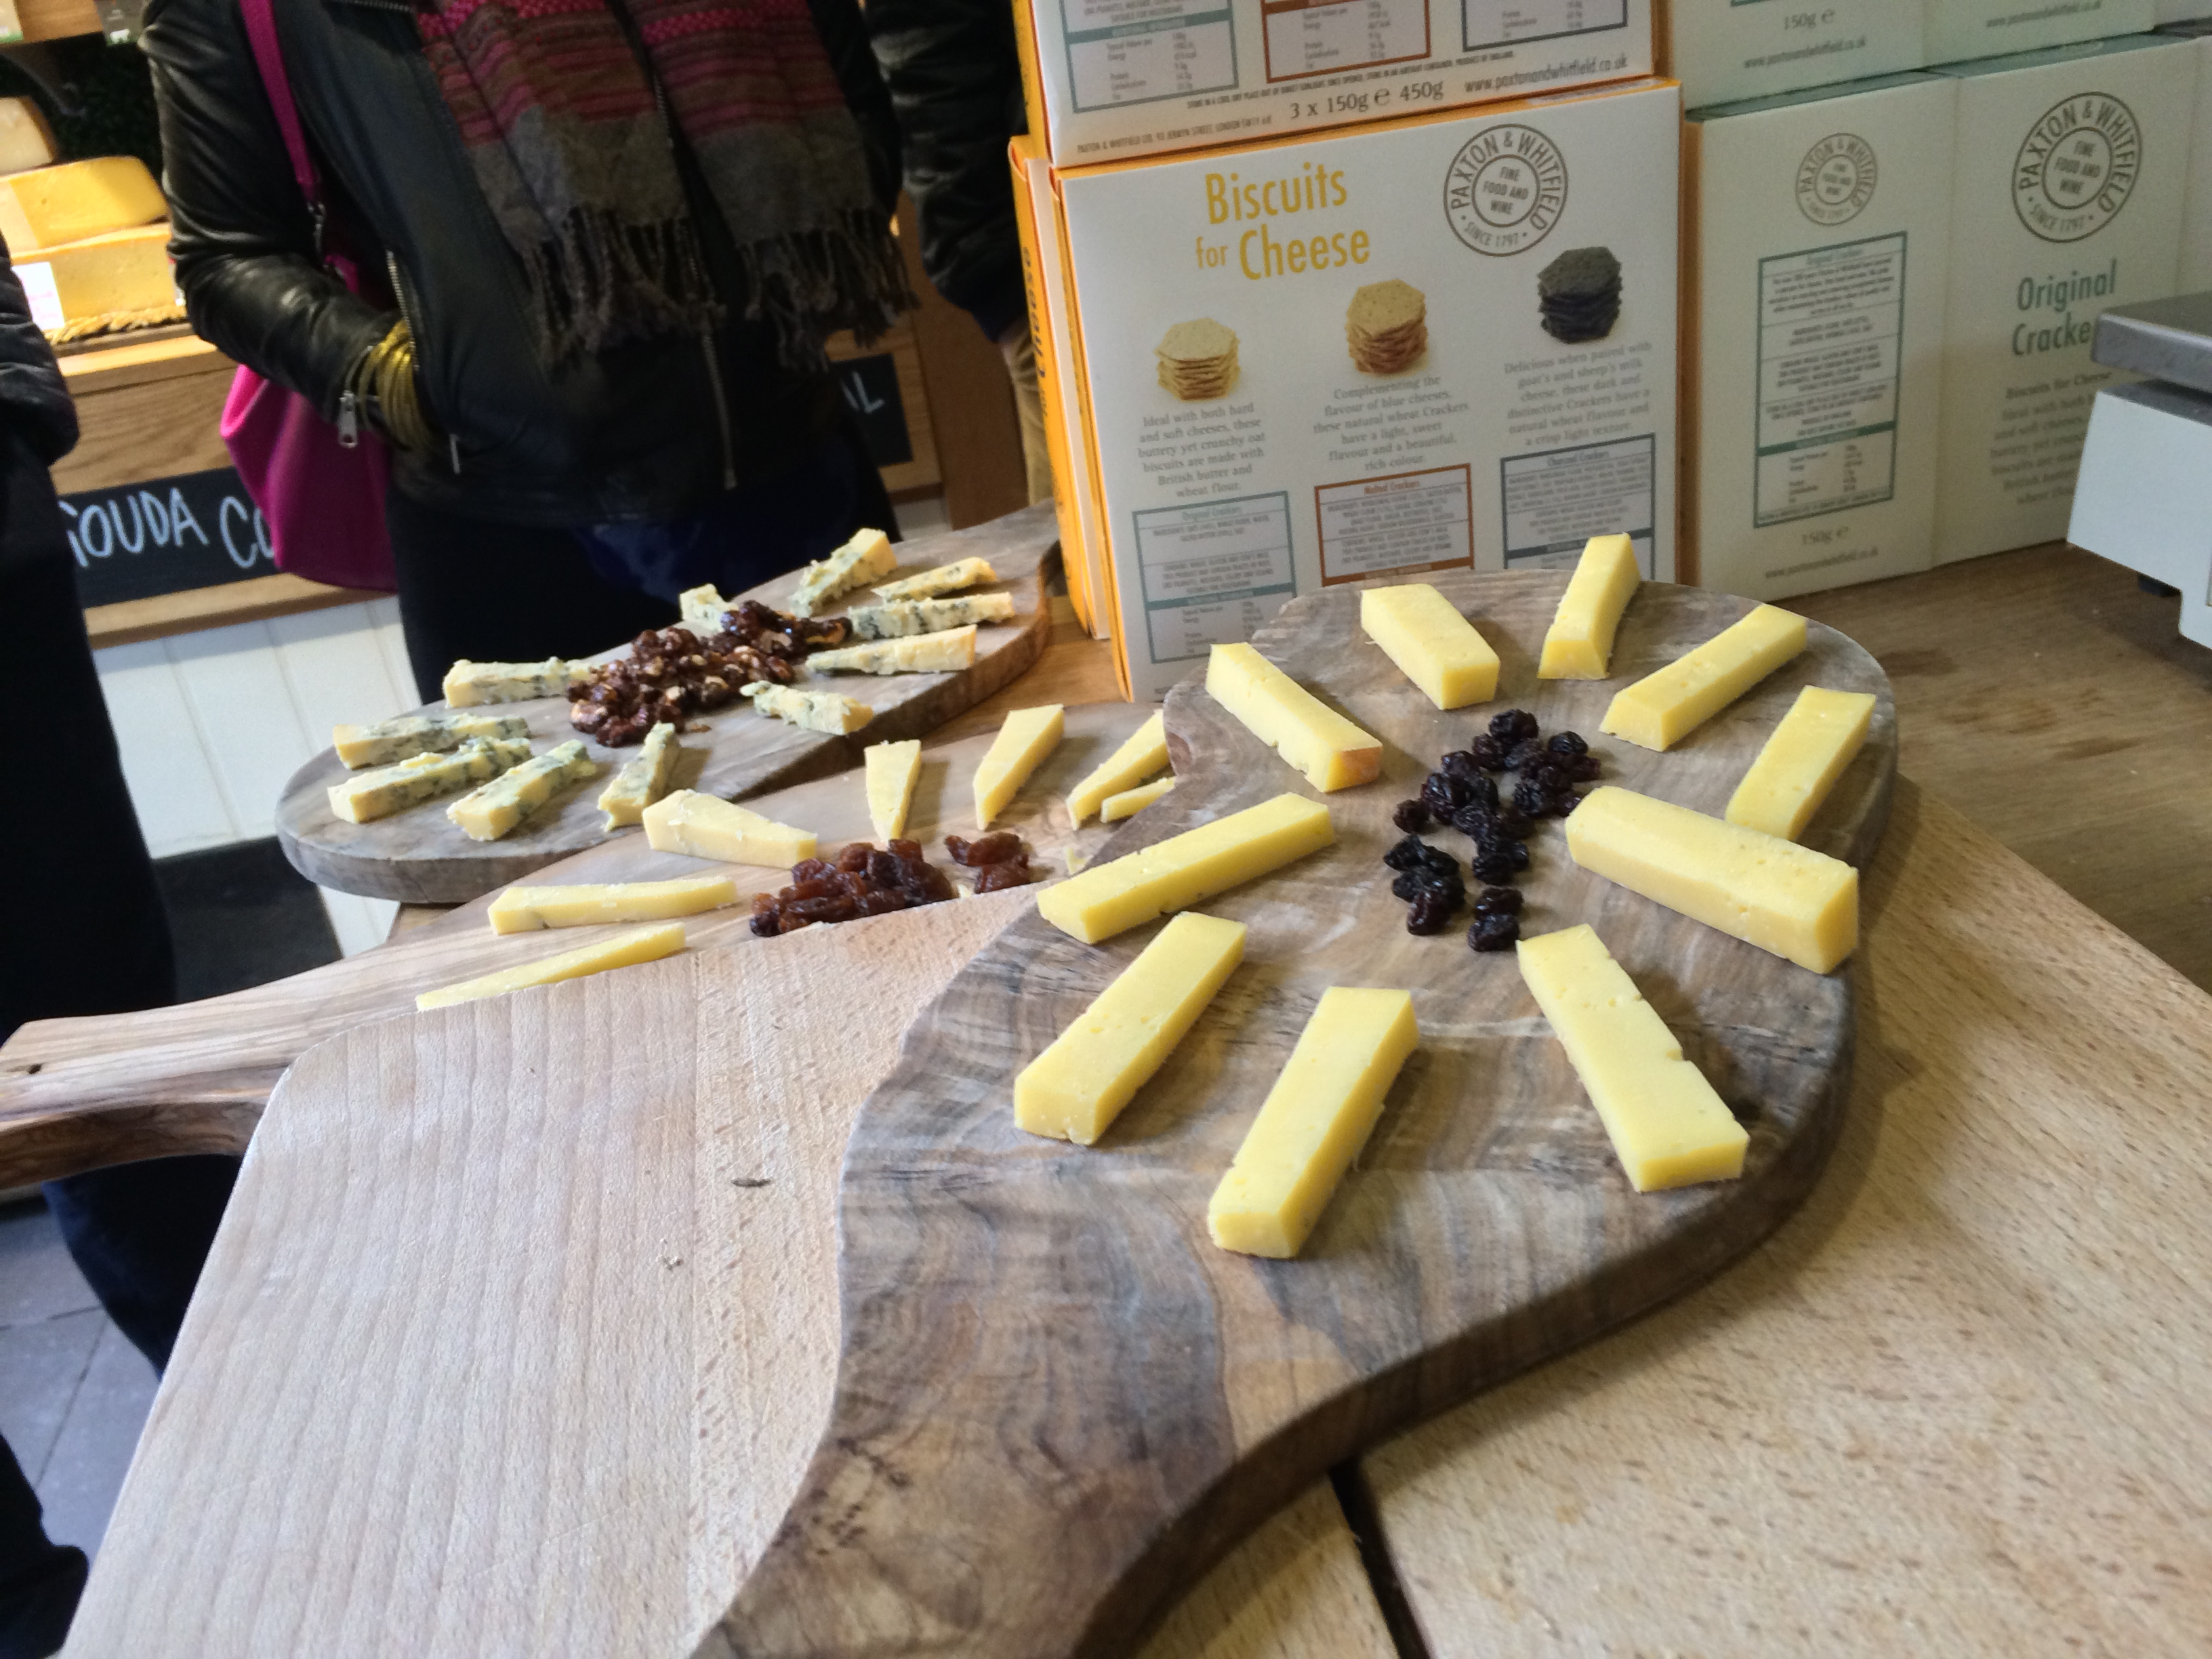 Cheese tasting at Androuet